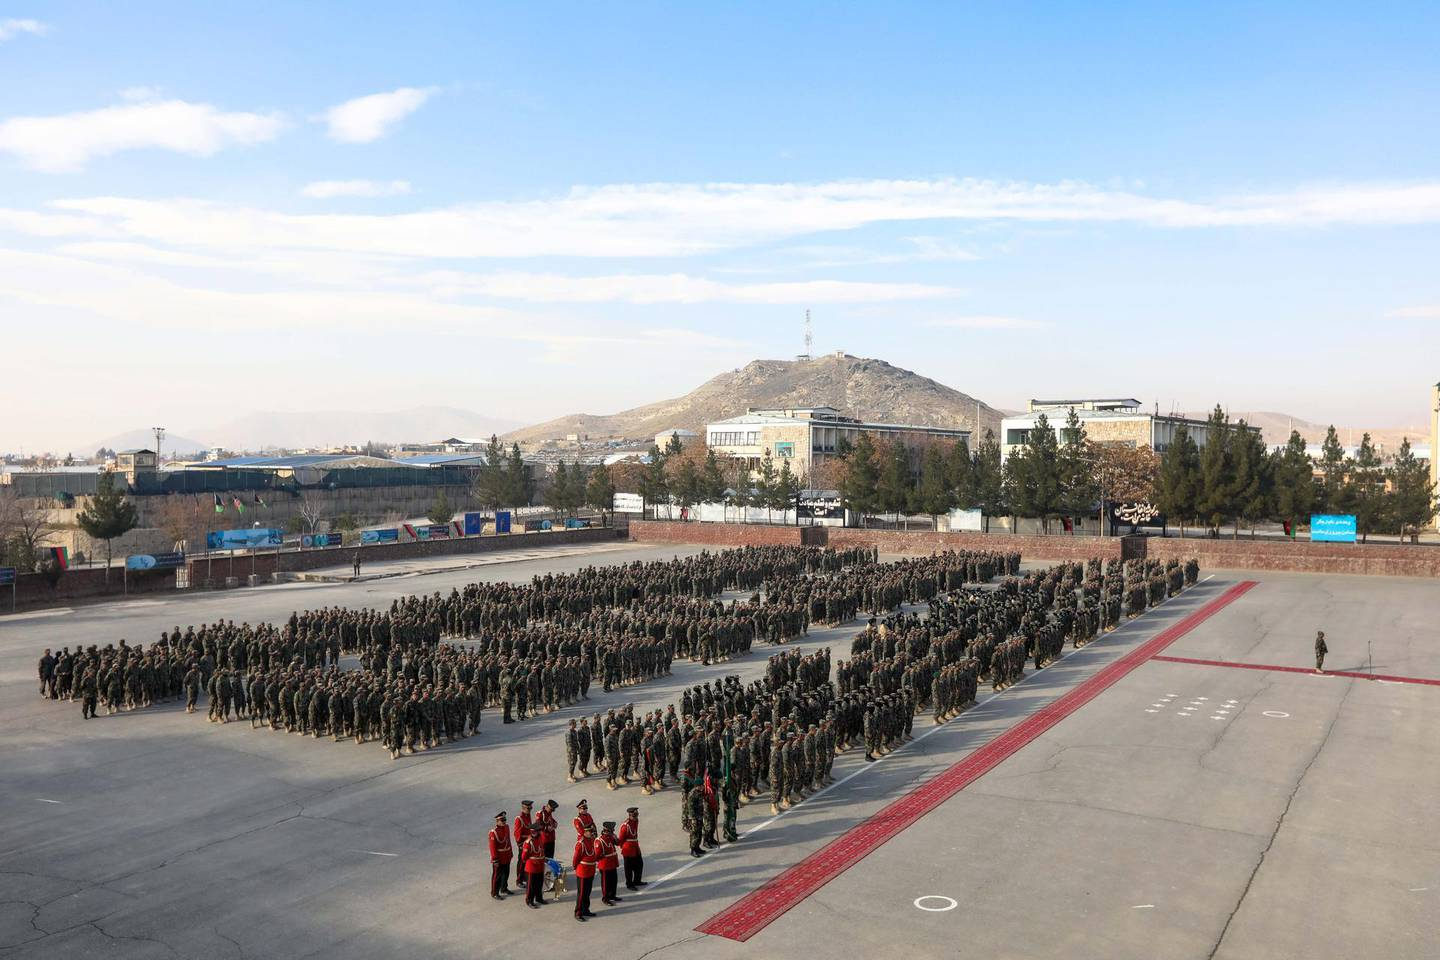 epa08850946 Afghan National Army soldiers stand in attention during their graduation ceremony at the military academy in Kabul, Afghanistan, 29 November 2020. At least 1279 Afghan soldiers including 200 female soldiers were graduated after three months of training.  EPA/HEDAYATULLAH AMID